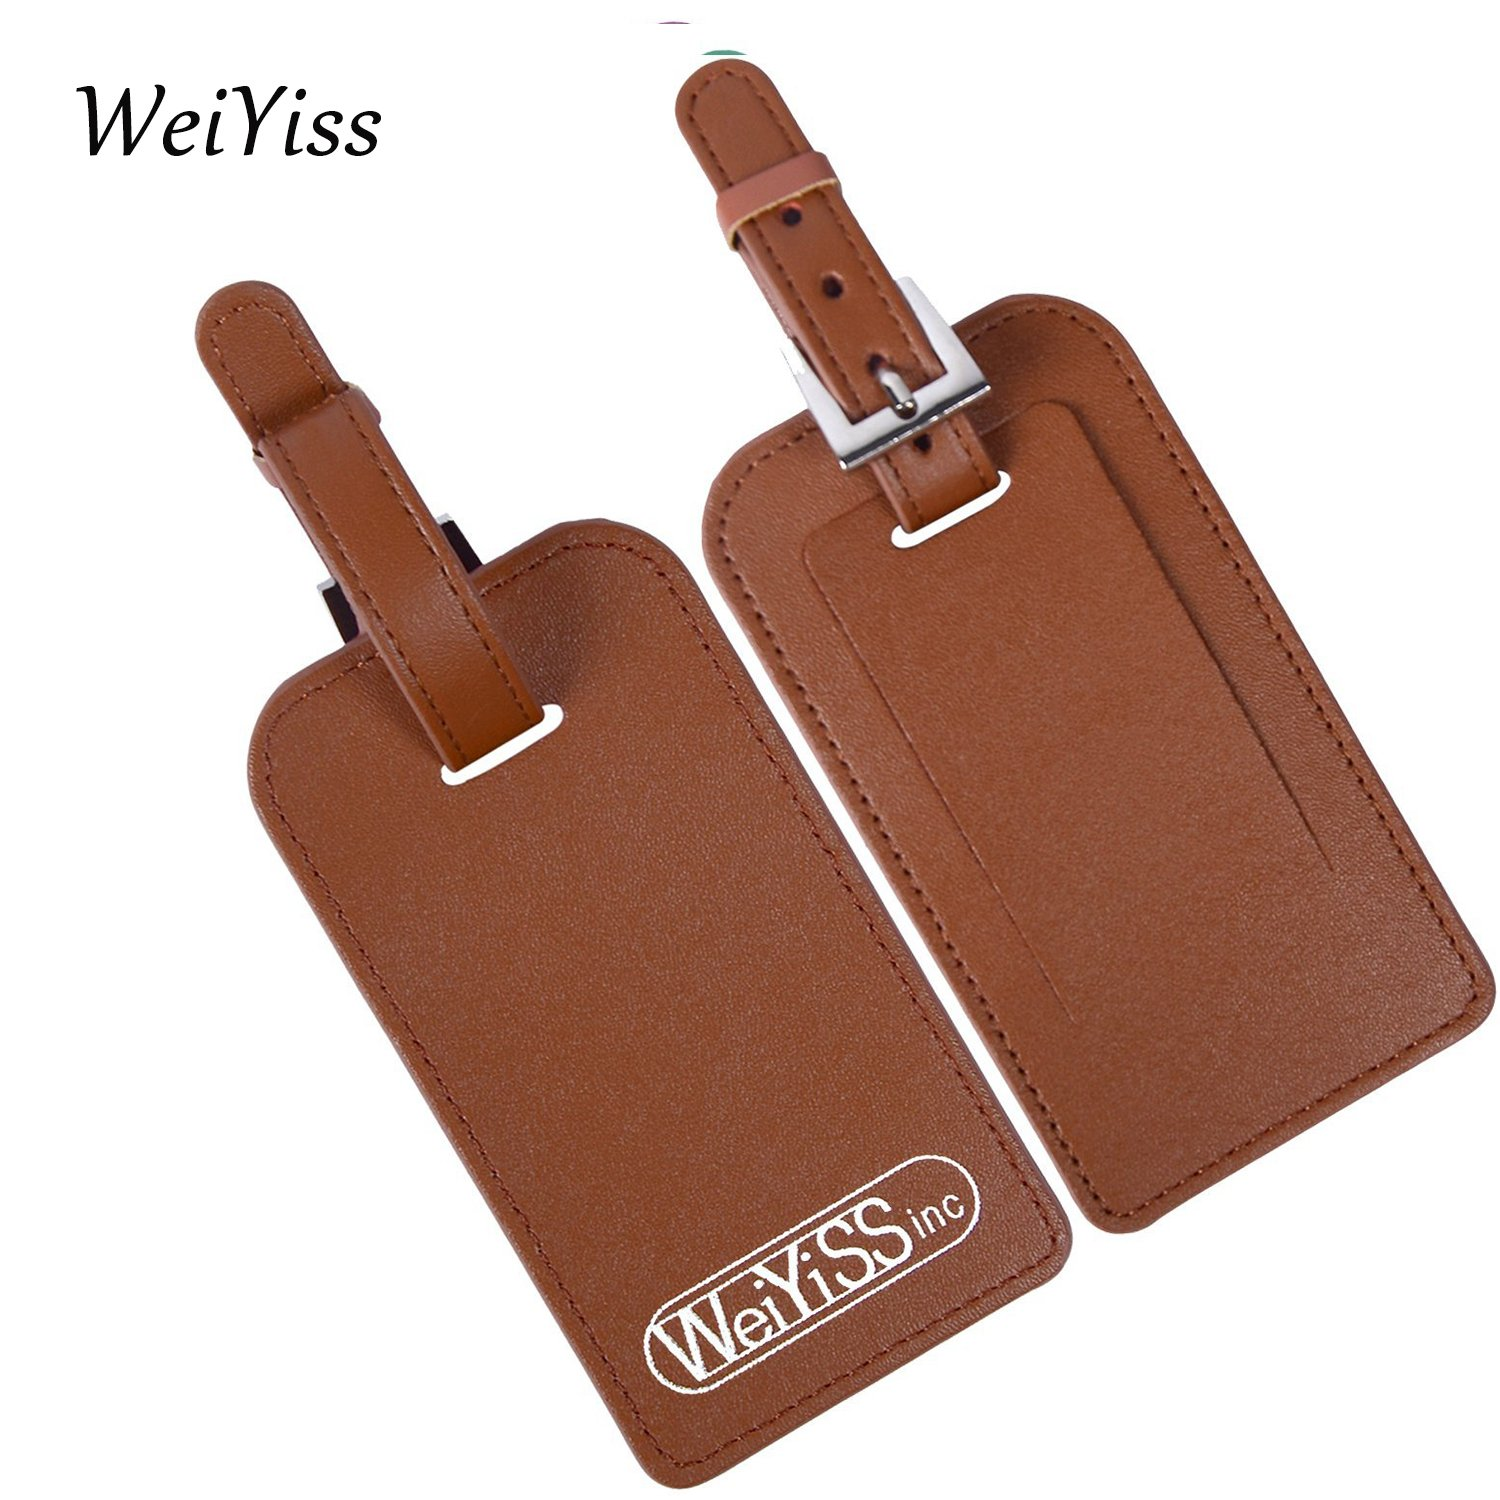 Leather Business ID Tags for Luggage Baggage Travel Flight Suitcase Sports Bag (Yellow) WEIYISS.inc